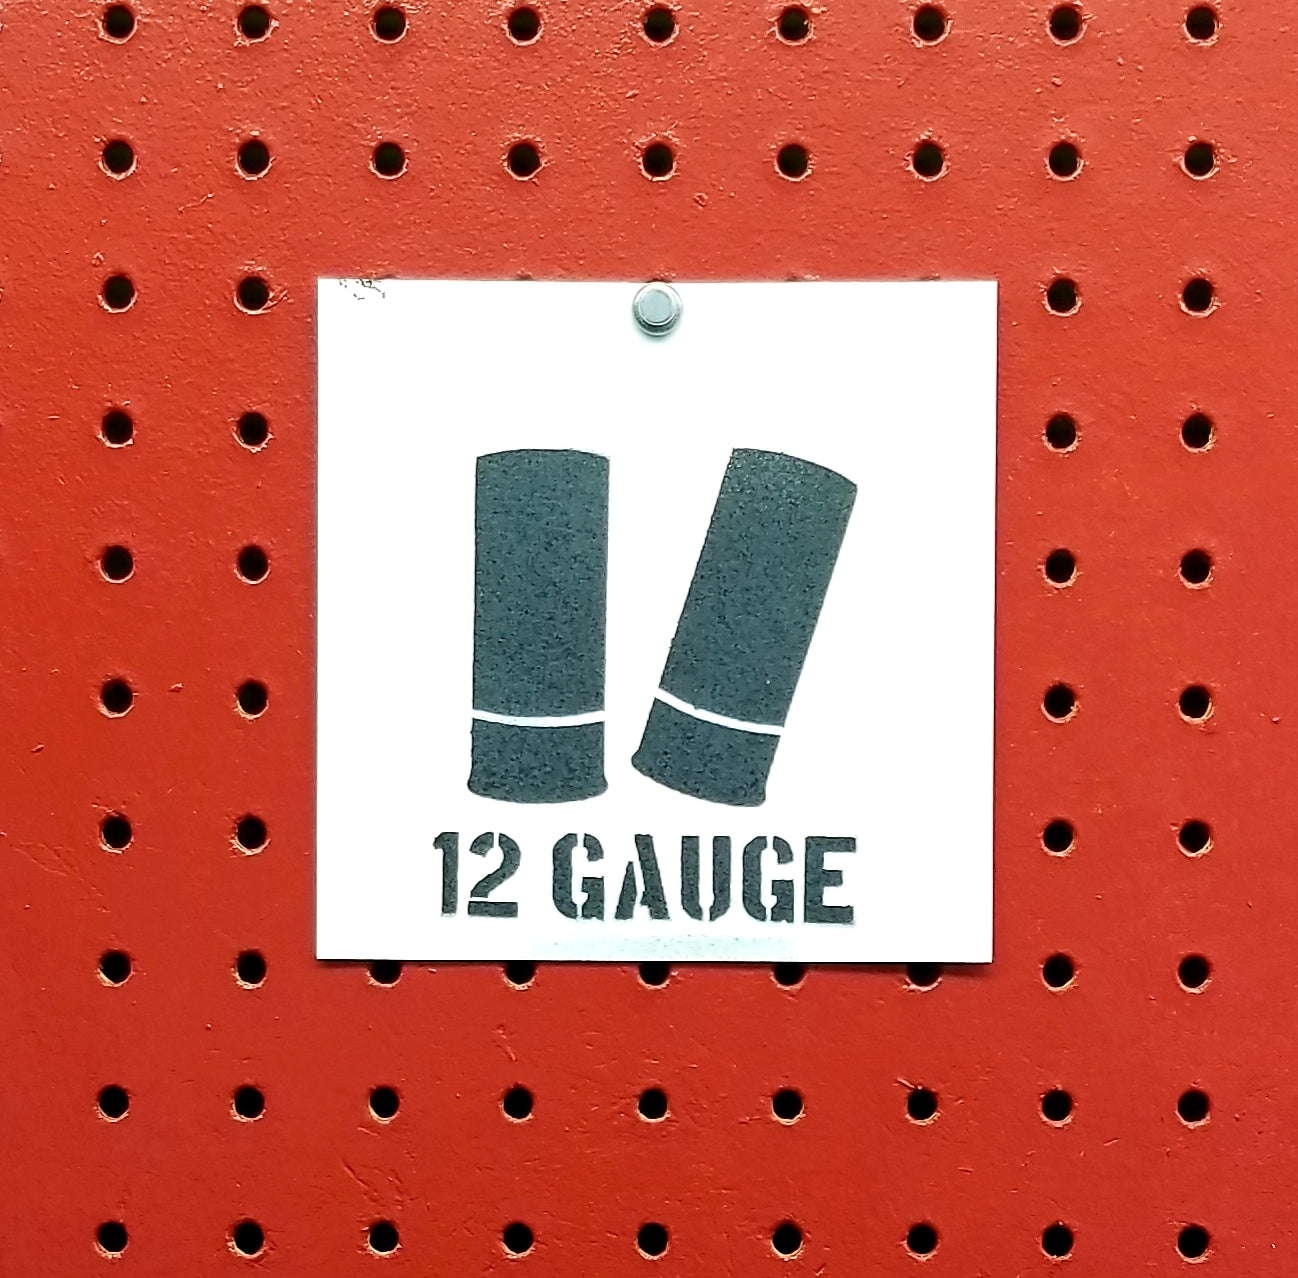 12 Gauge Ammo Spray Paint Stencil